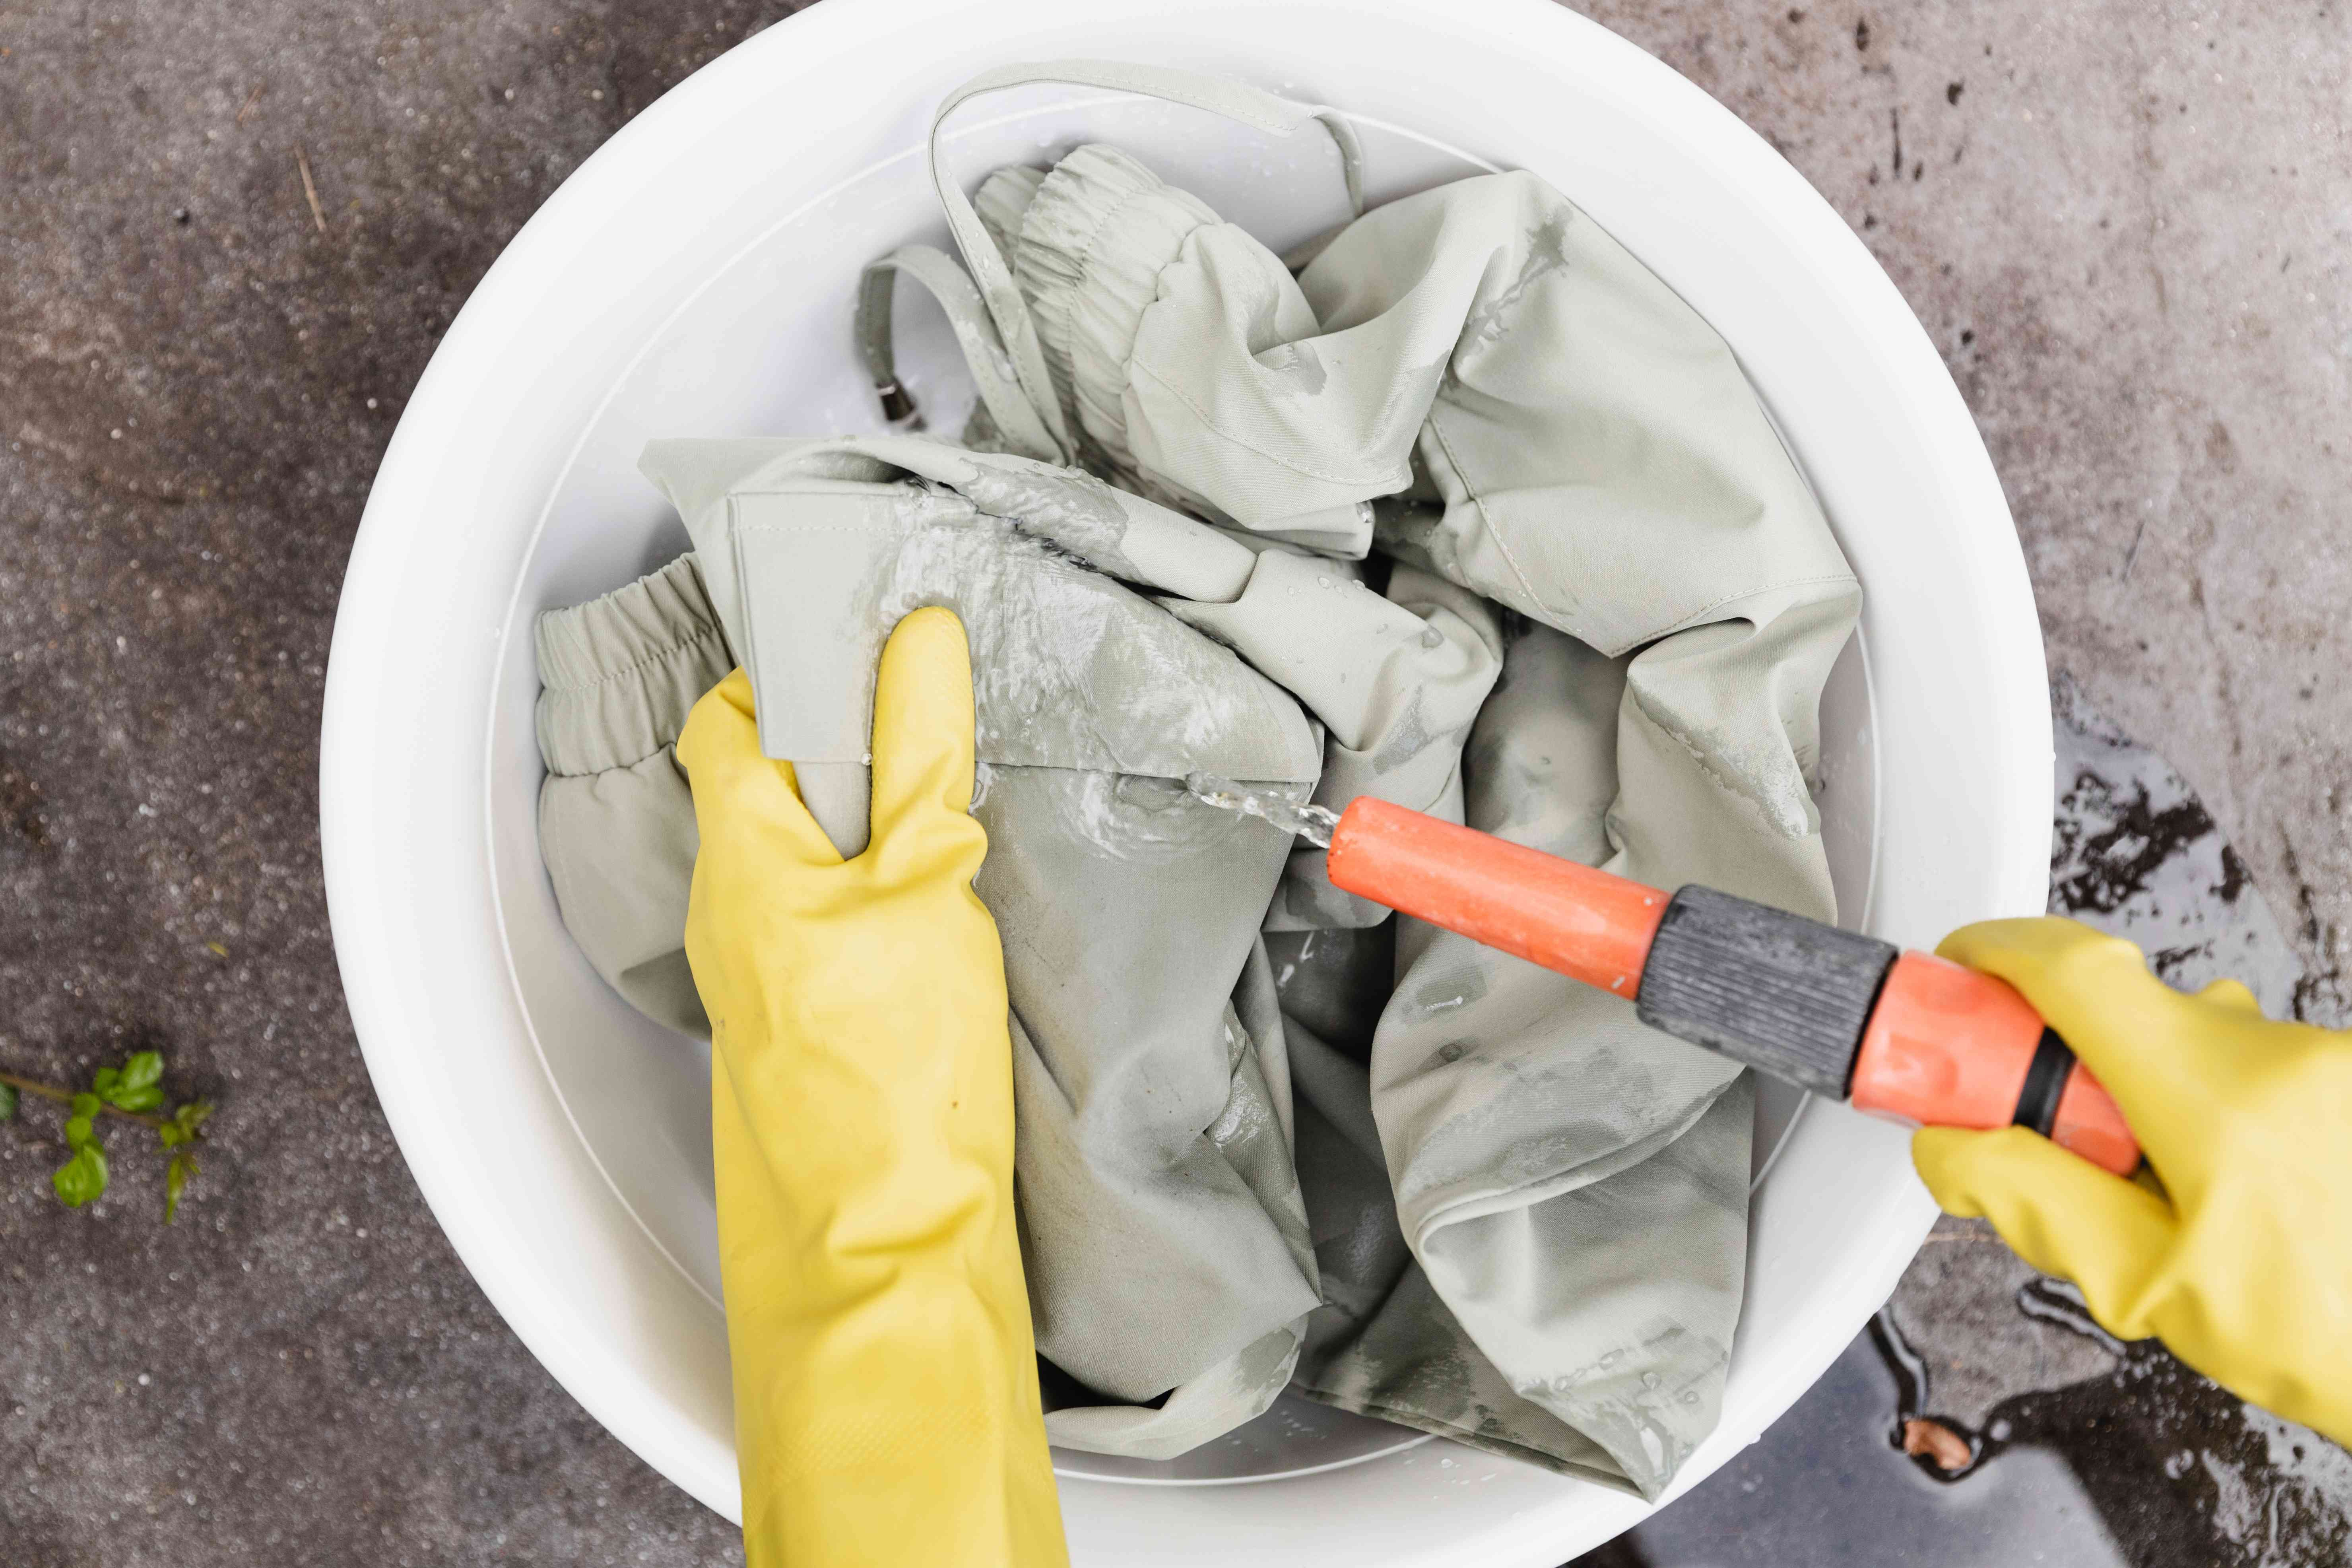 Chemical odors on grey pants being rinsed from orange hose with yellow gloves in white bucket